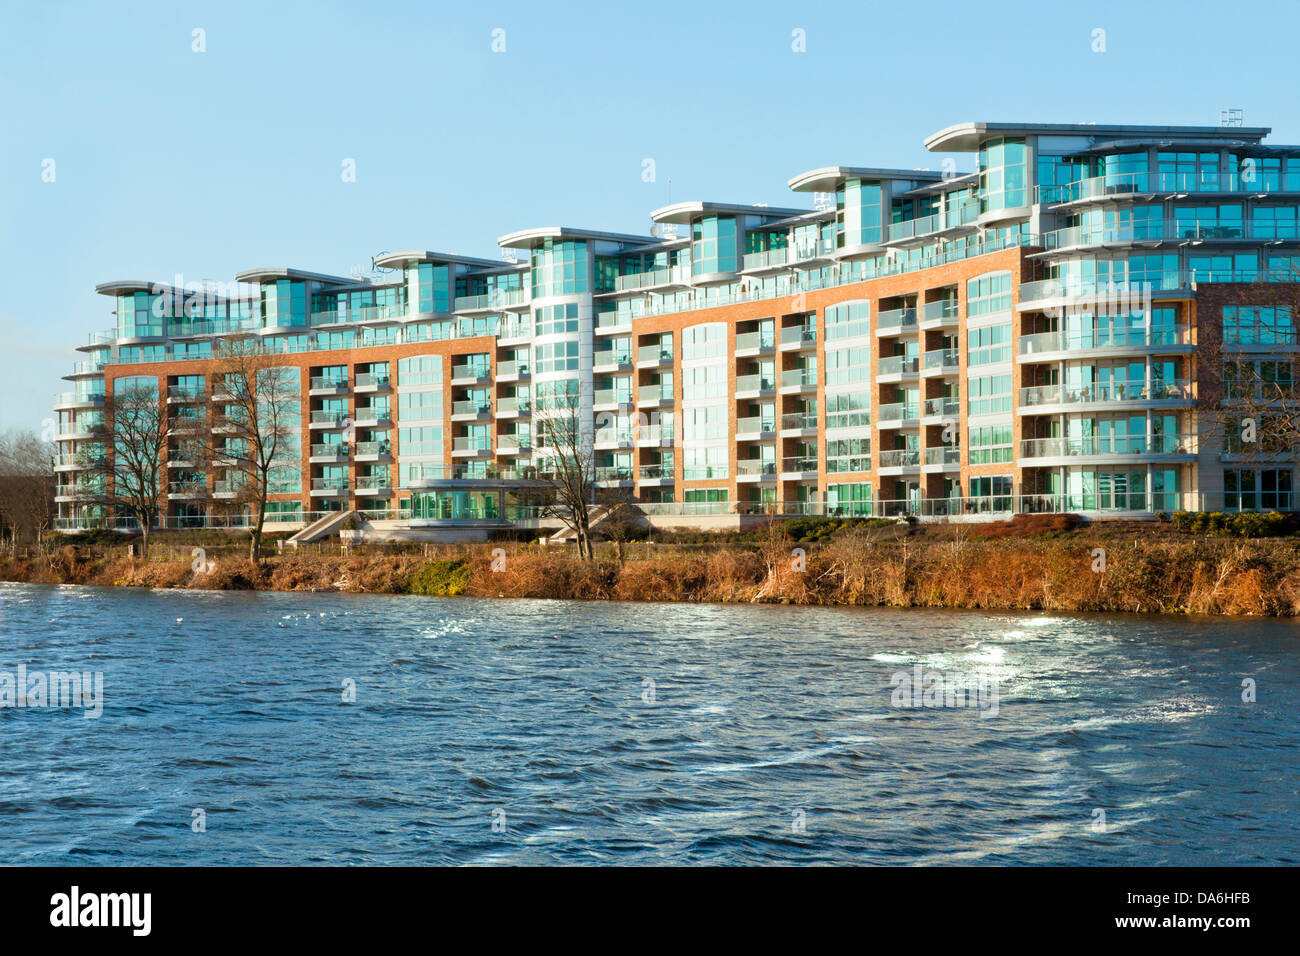 Elegant River Crescent, Modern Waterfront Apartments Built On The Banks Of The  River Trent In Nottingham, England, UK